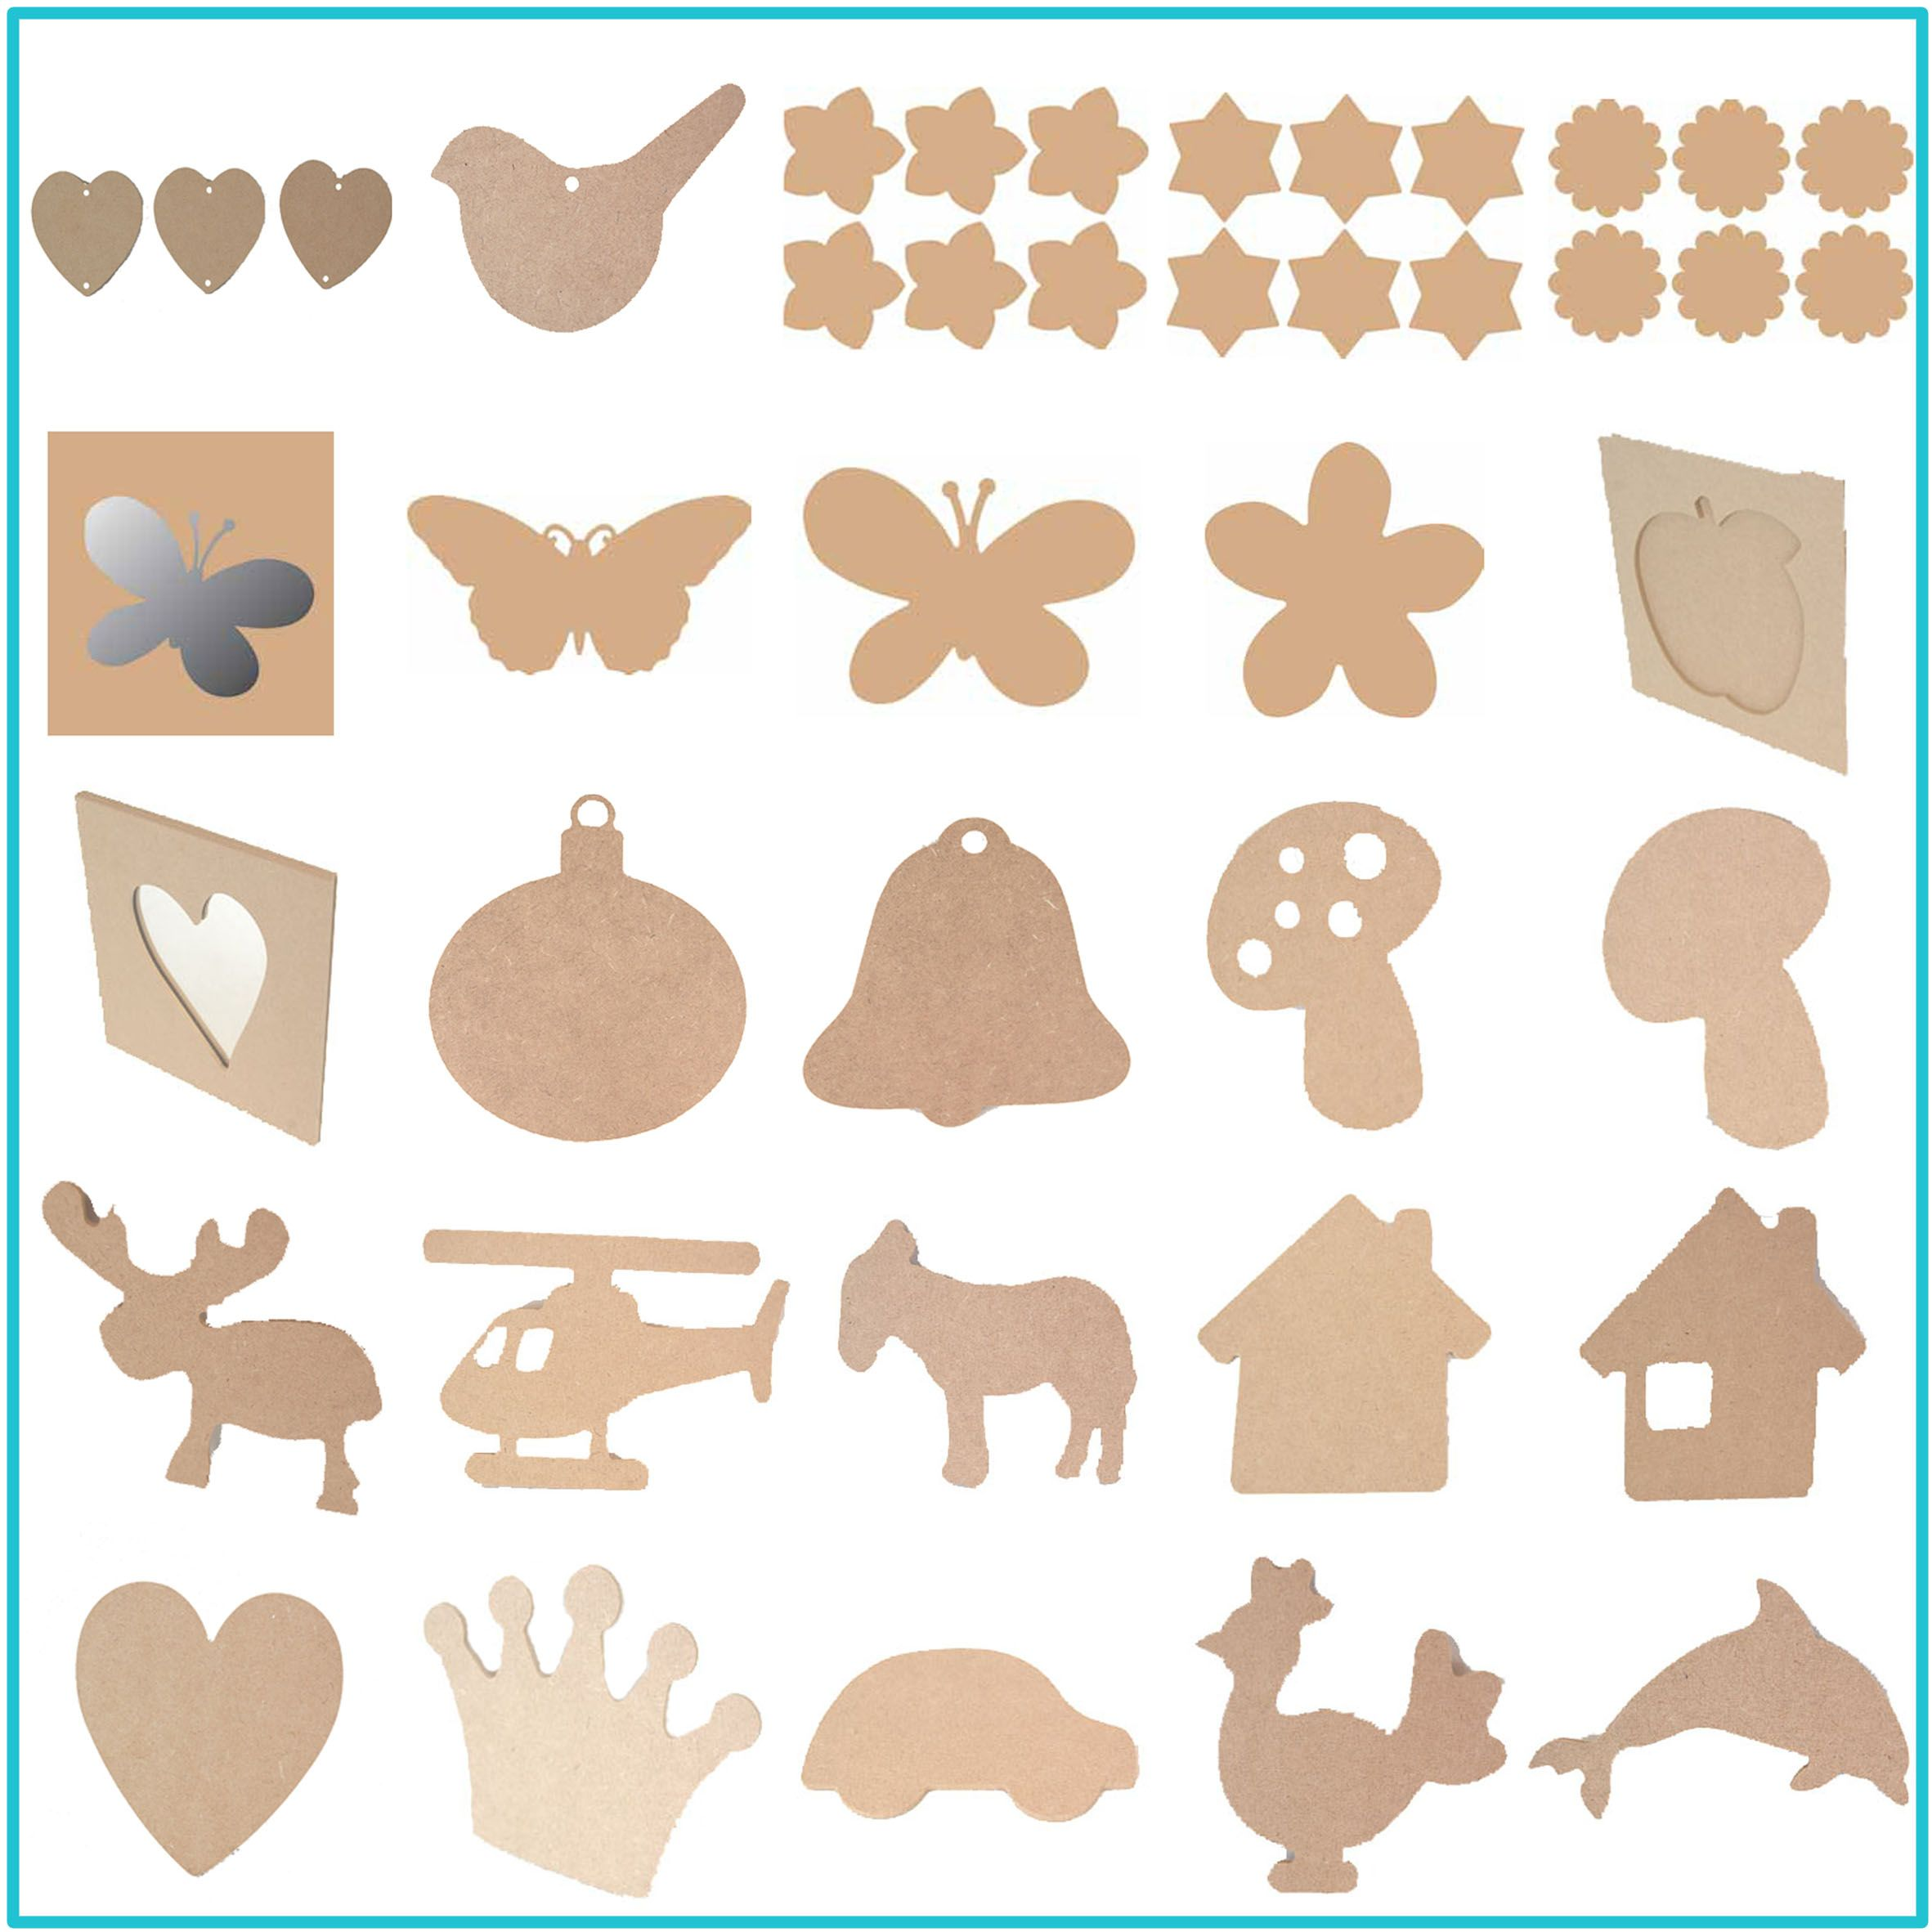 Painted wooden shapes for crafts - Lots Of Wood Shapes Ready To Paint Decoupage Or Embellish